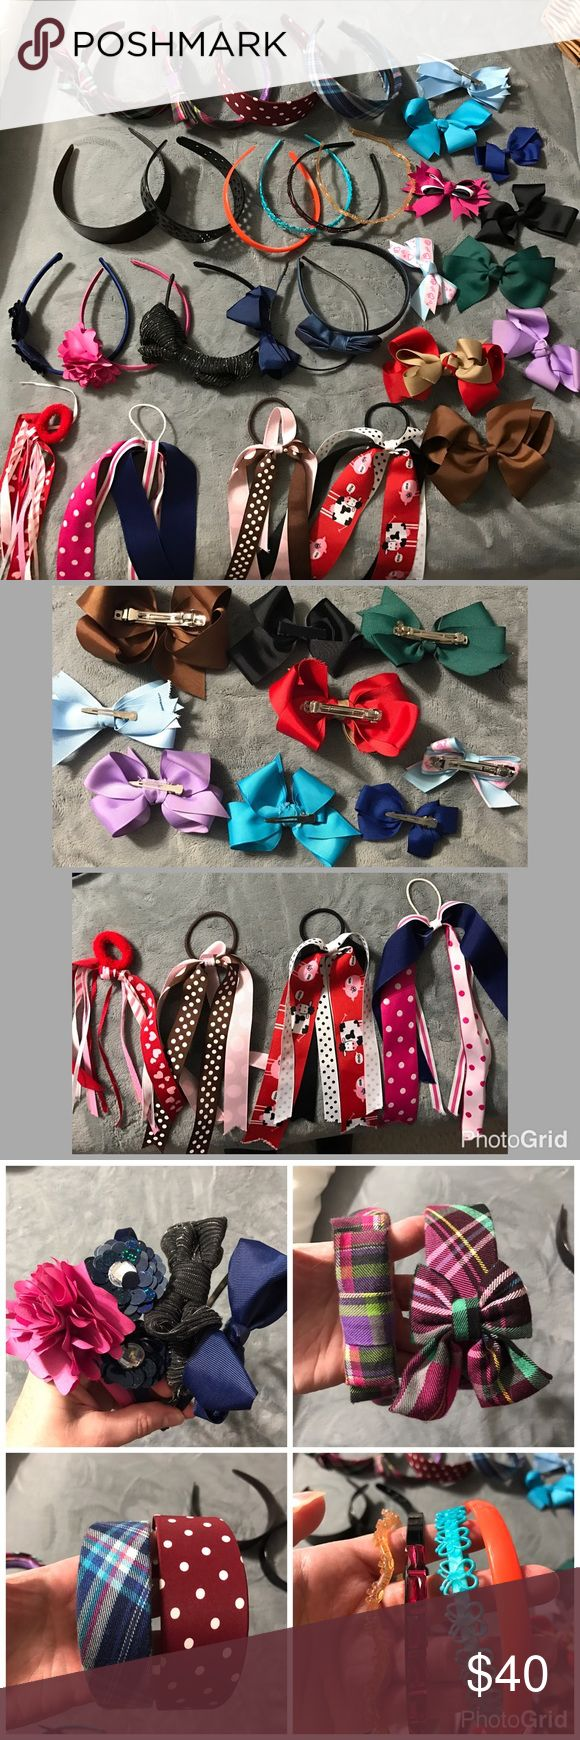 Girls Assorted Hair Things...Bows, Headbands etc 33 total used hair things...7 wide headbands, 4 skinny headbands and 7 skinny headband with bows or flower on one side. 10 bows of assorted sizes(see pic 2 for backs/closures) 4 ribbon ponytail bands and 1 beaded one....priced to sell bundle to save more plus ⚡️📦📫😁💕 Accessories Hair Accessories